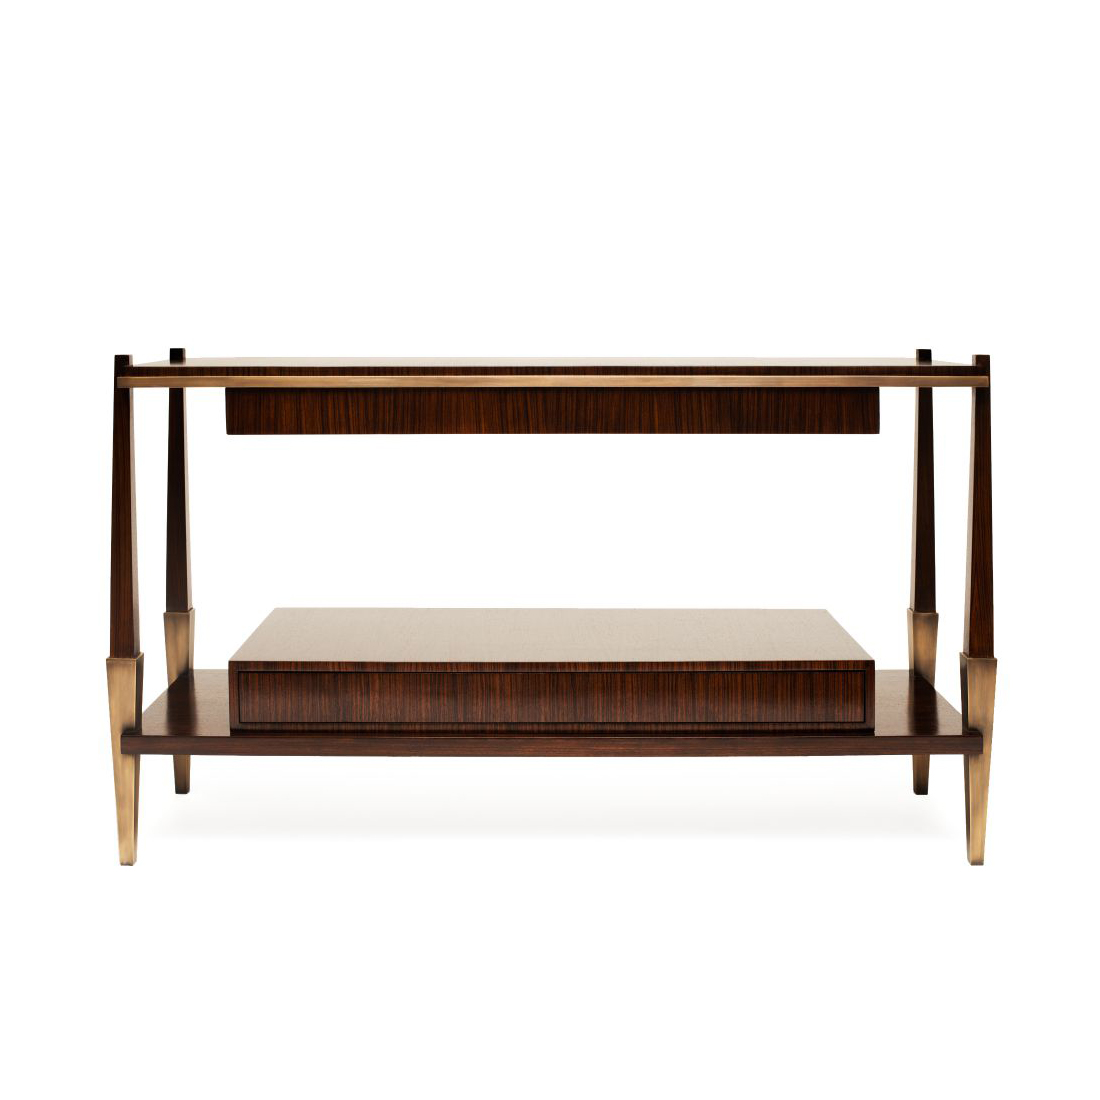 Ray Console by Dylan Farrellfor Jean De Merry